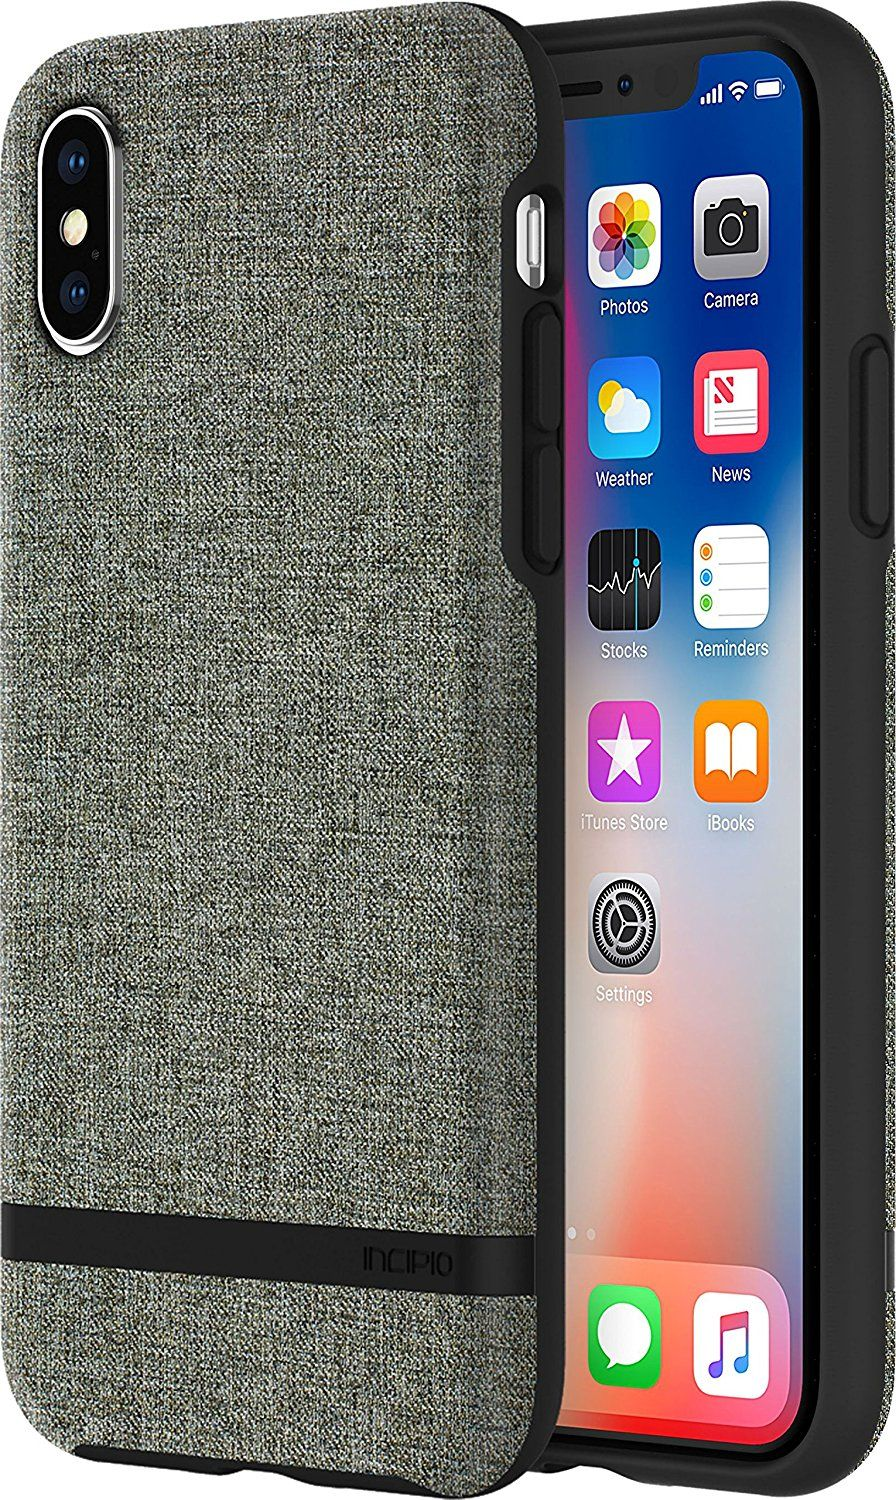 b451632d376 Incipio Carnaby iPhone X Case  Esquire Series  with Co-Molded Design and  Ultra-Soft Cotton Finish for iPhone X - Forest Gray